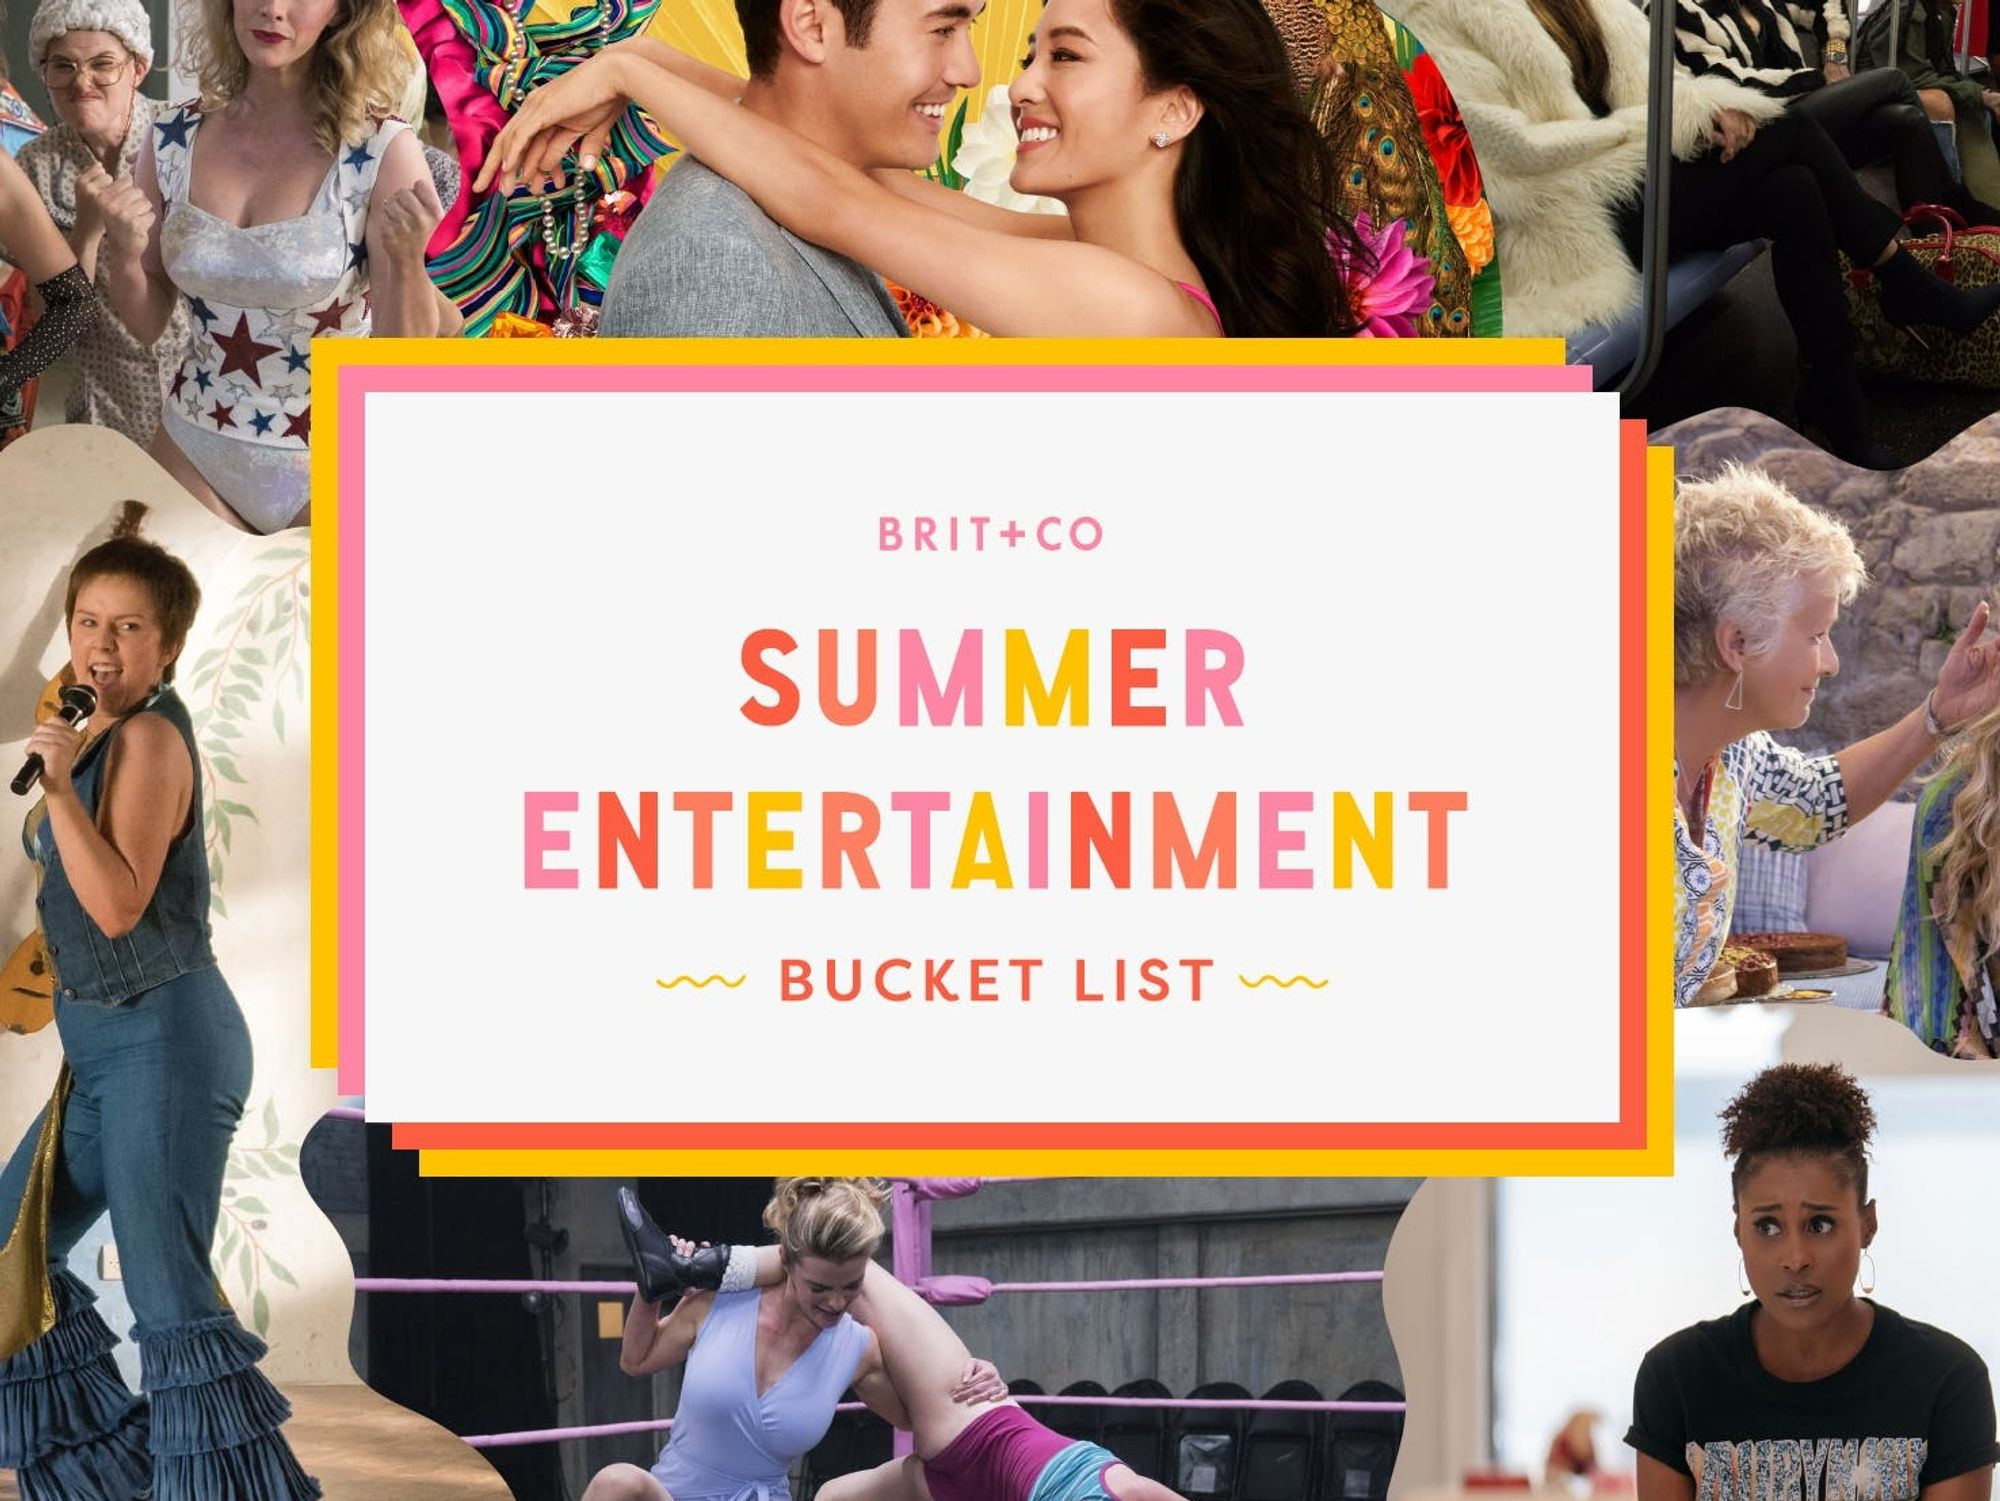 Brit + Co's Summer Entertainment Bucket List